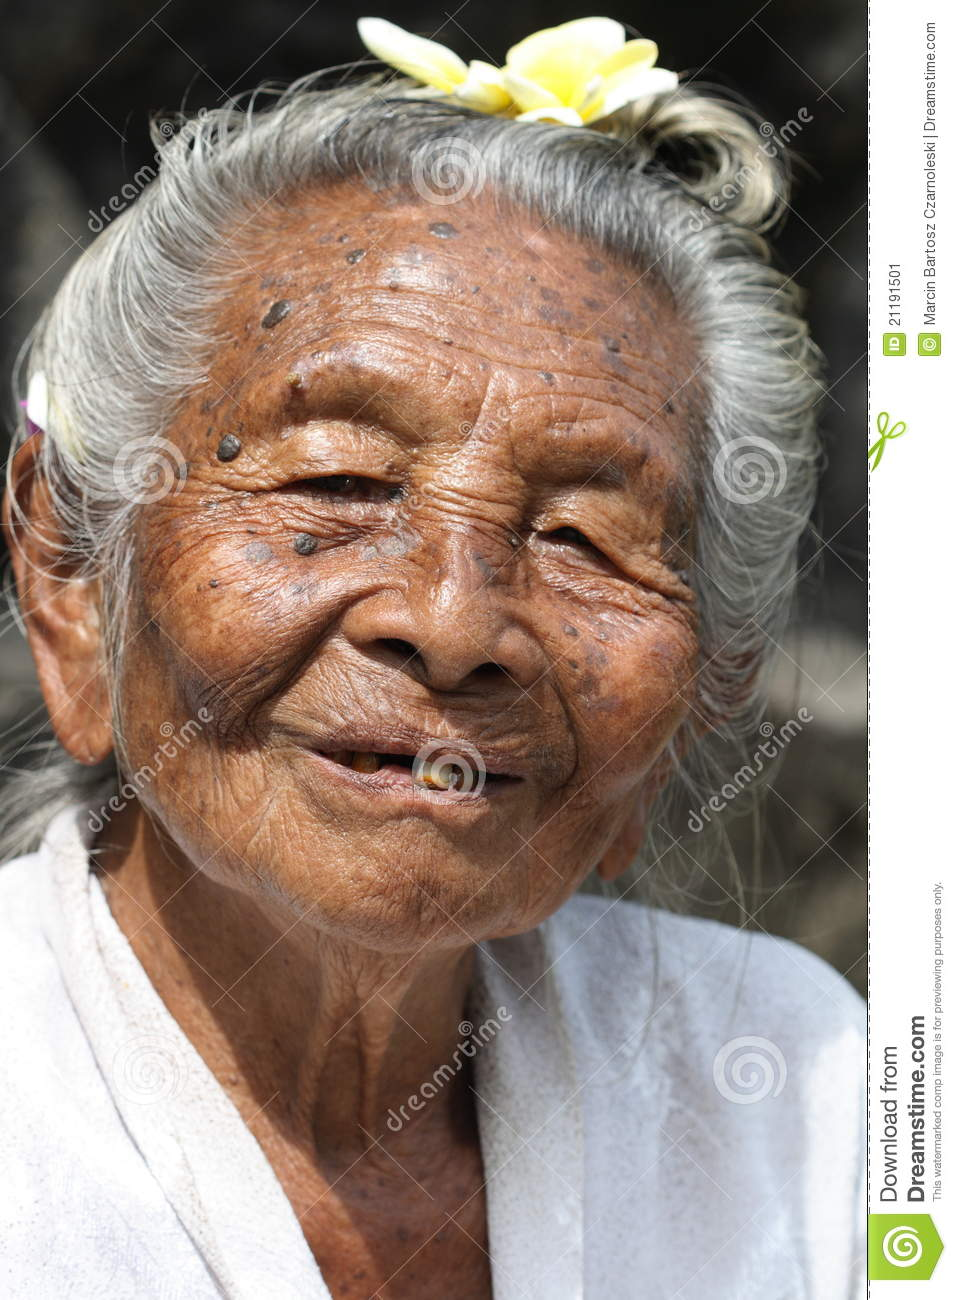 Old Hindu lady from Bali, Indonesia